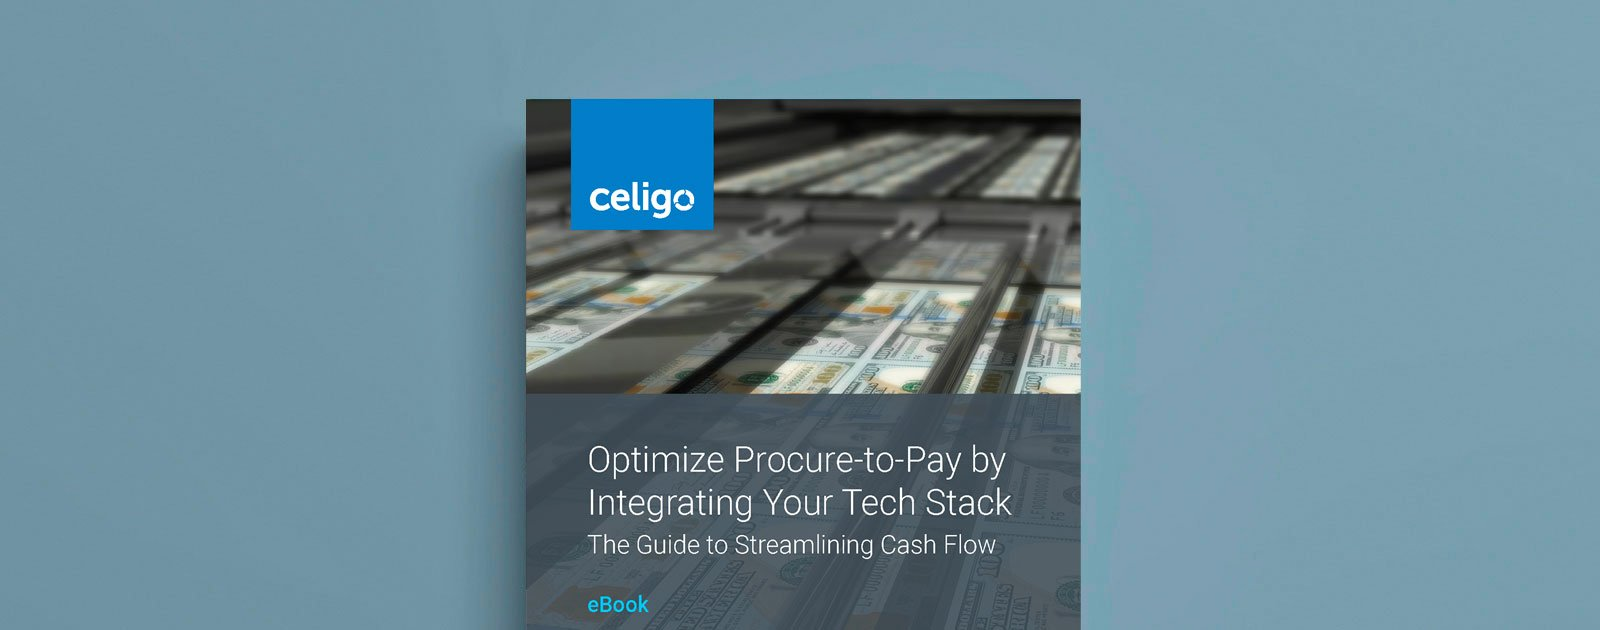 Optimize Procure-to-Pay by Integrating Your Tech Stack